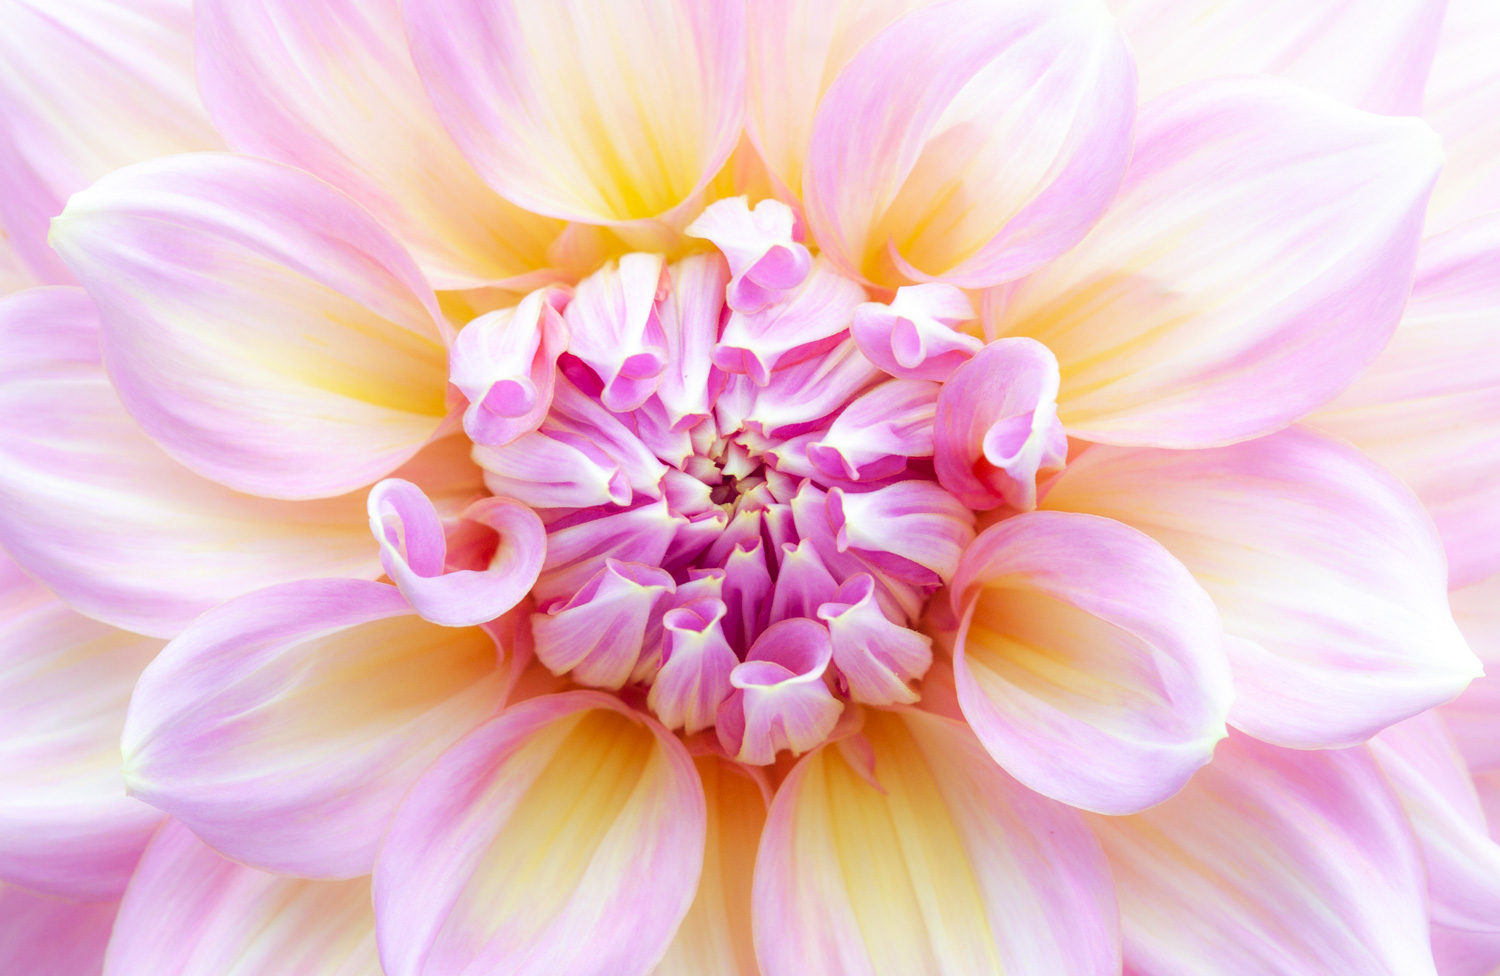 Macro shot of a pink and yellow flower